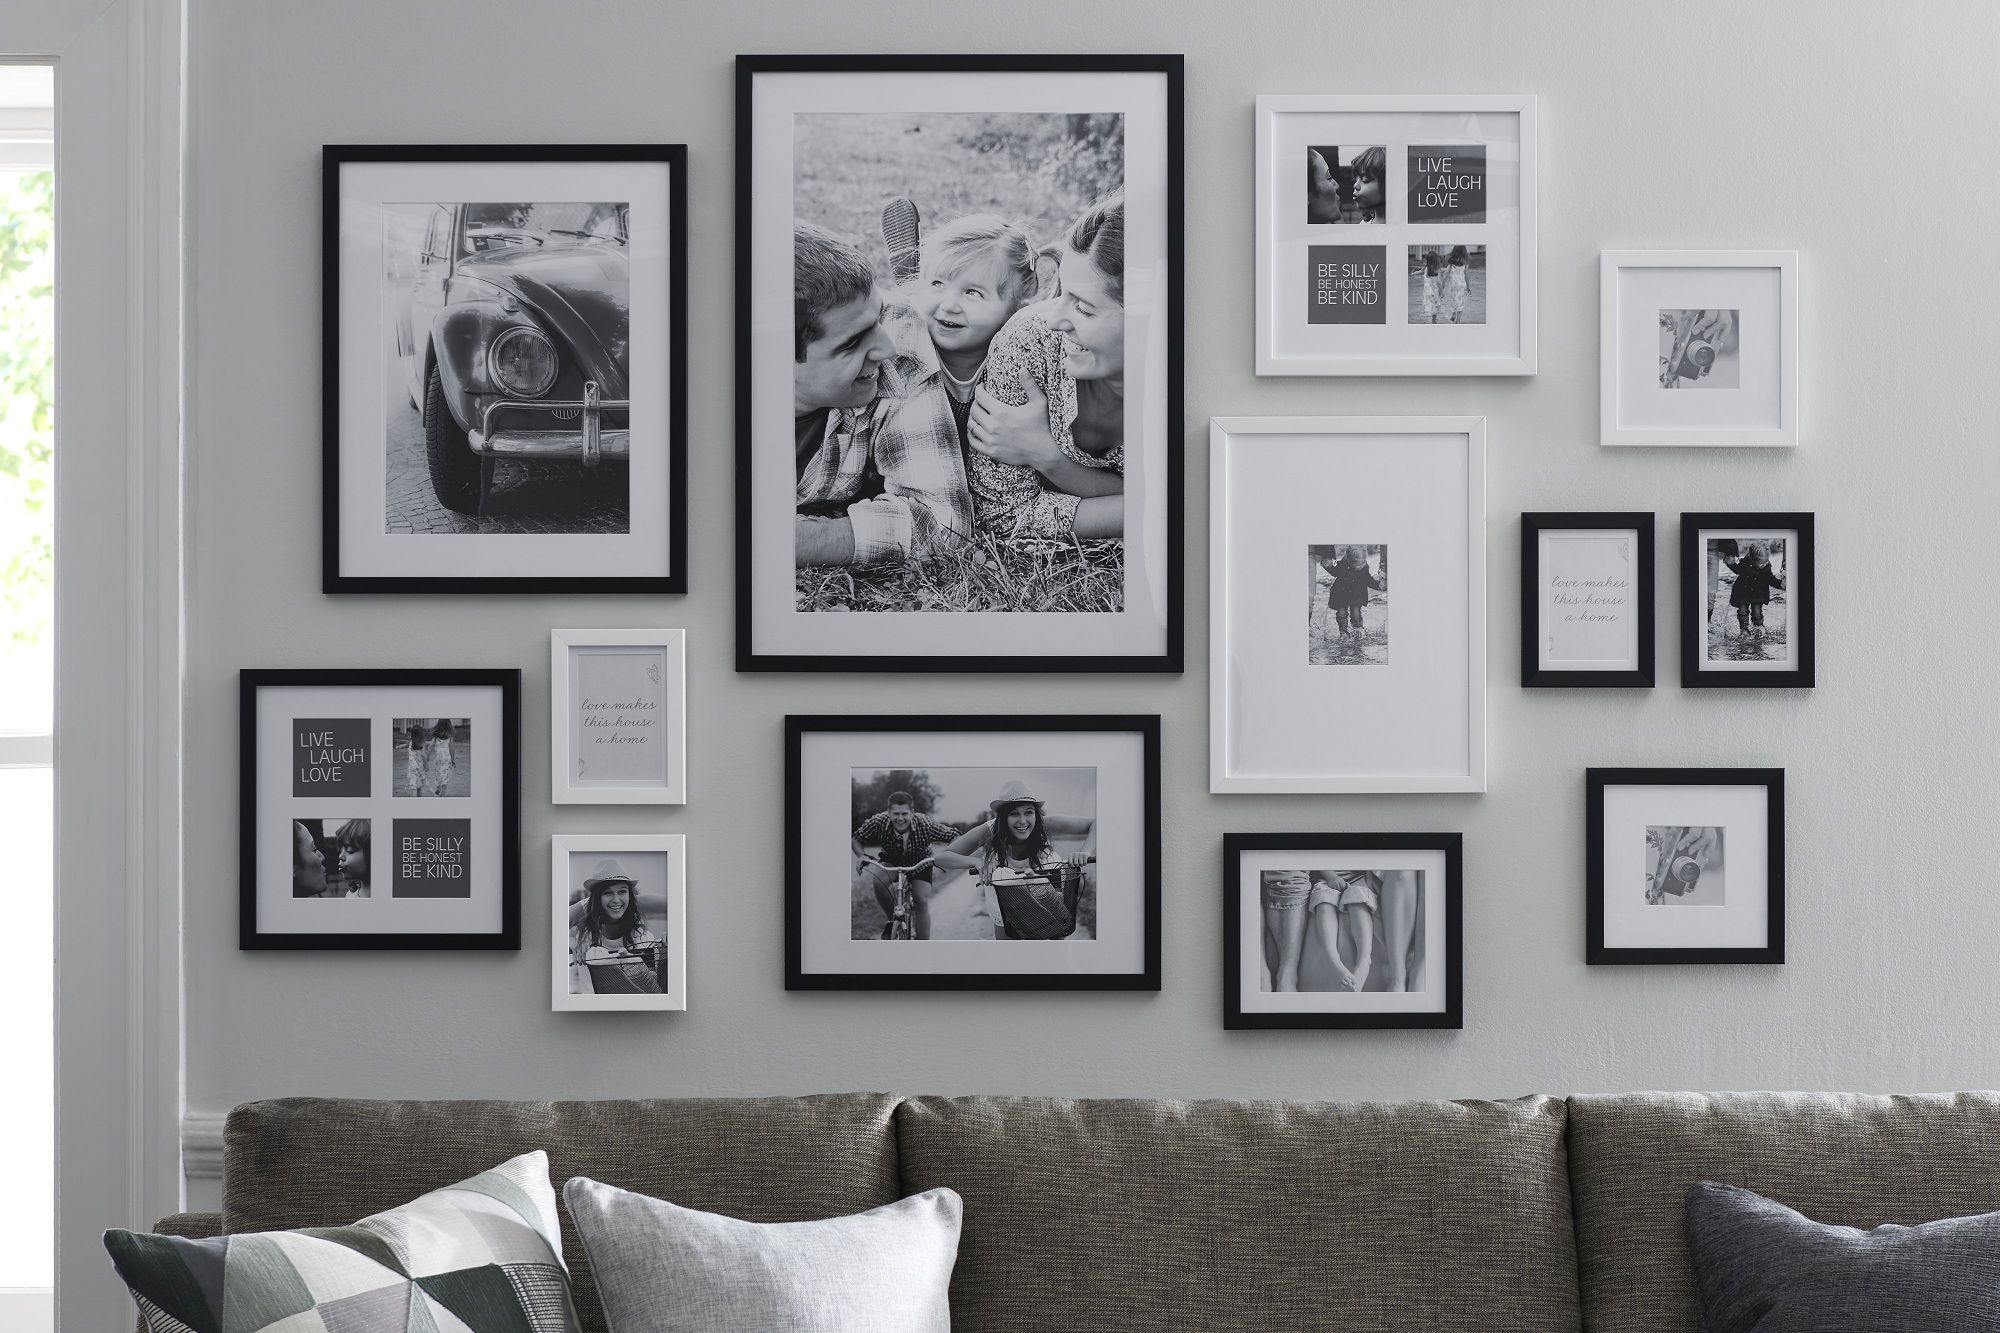 Decorate Your Walls With Moments And People You Never Want To Forget Tap The Image Our New Gallery Wall Frames